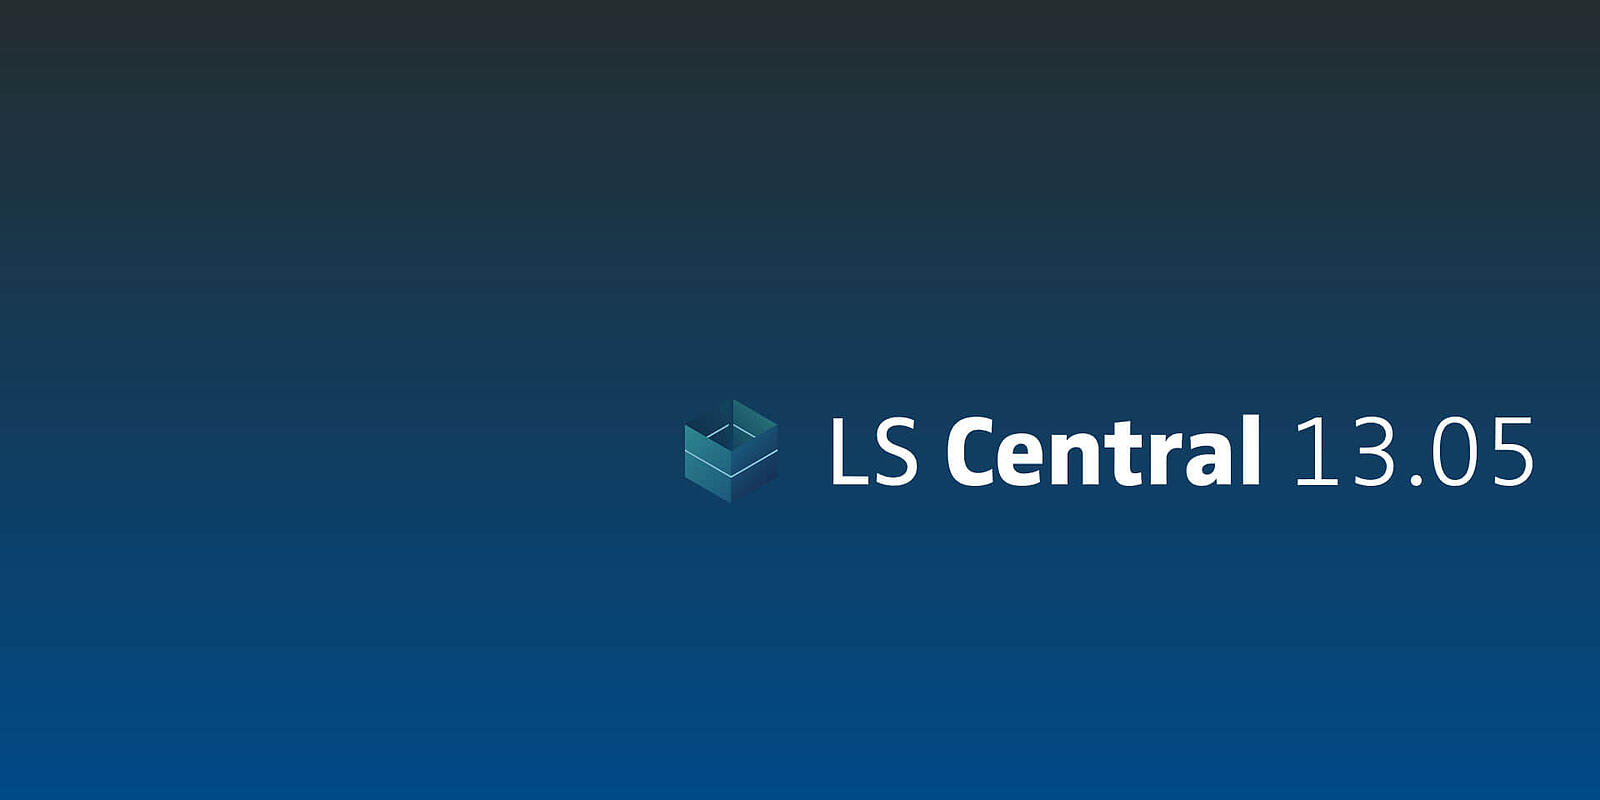 LS Central 13.05: source items from vendors, optimize your sales forecasts, price activities dynamically